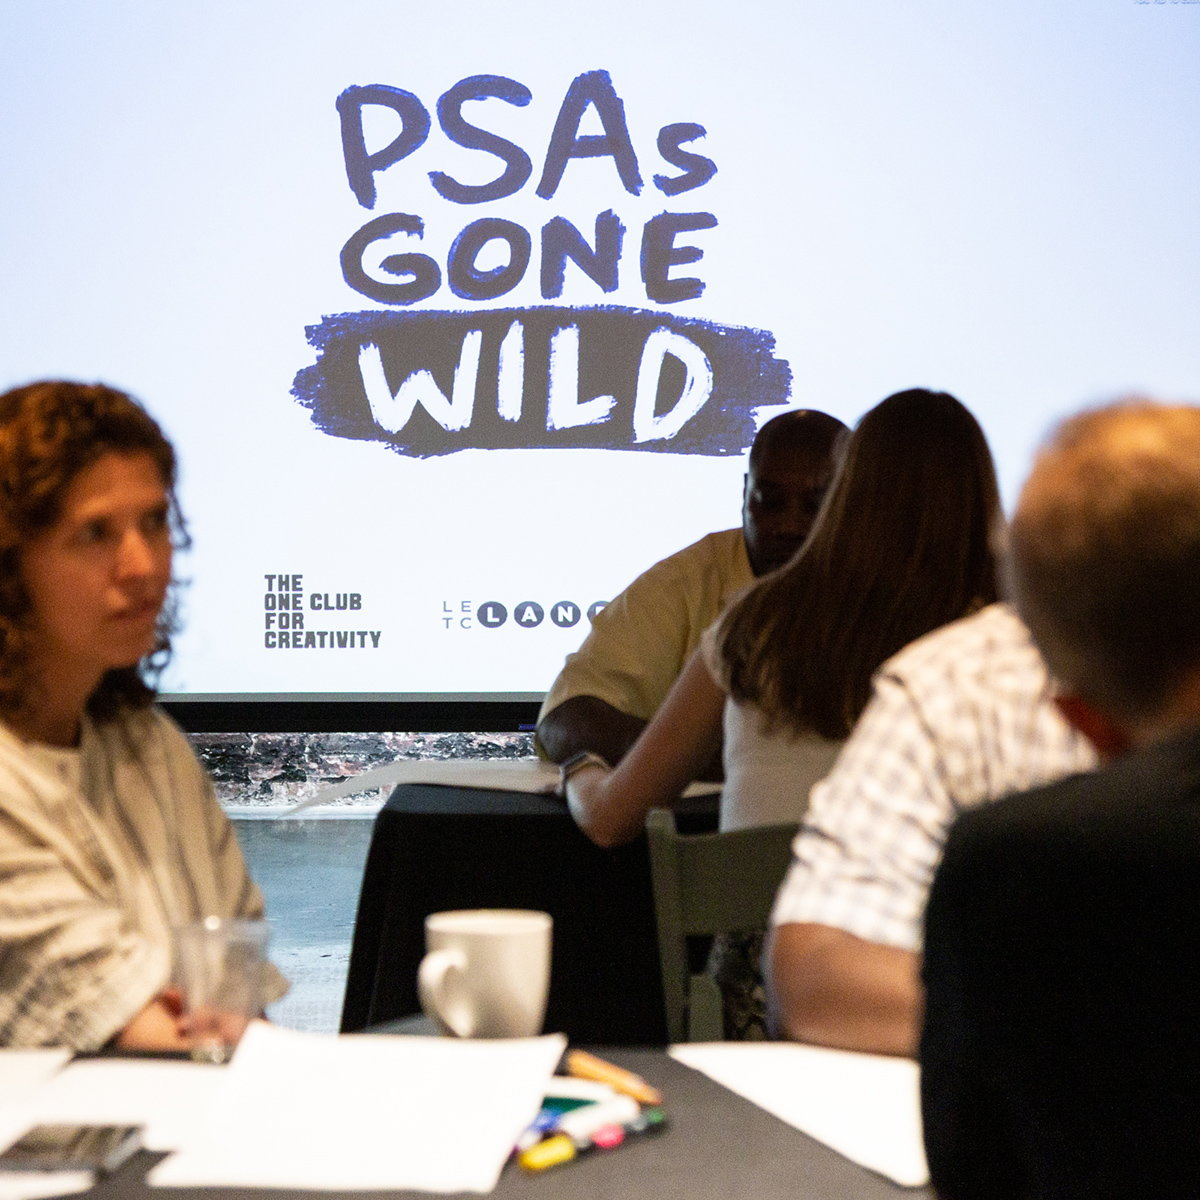 The One Club Hosts Neurodiversity Creative Workshop 'PSAs Gone Wild'